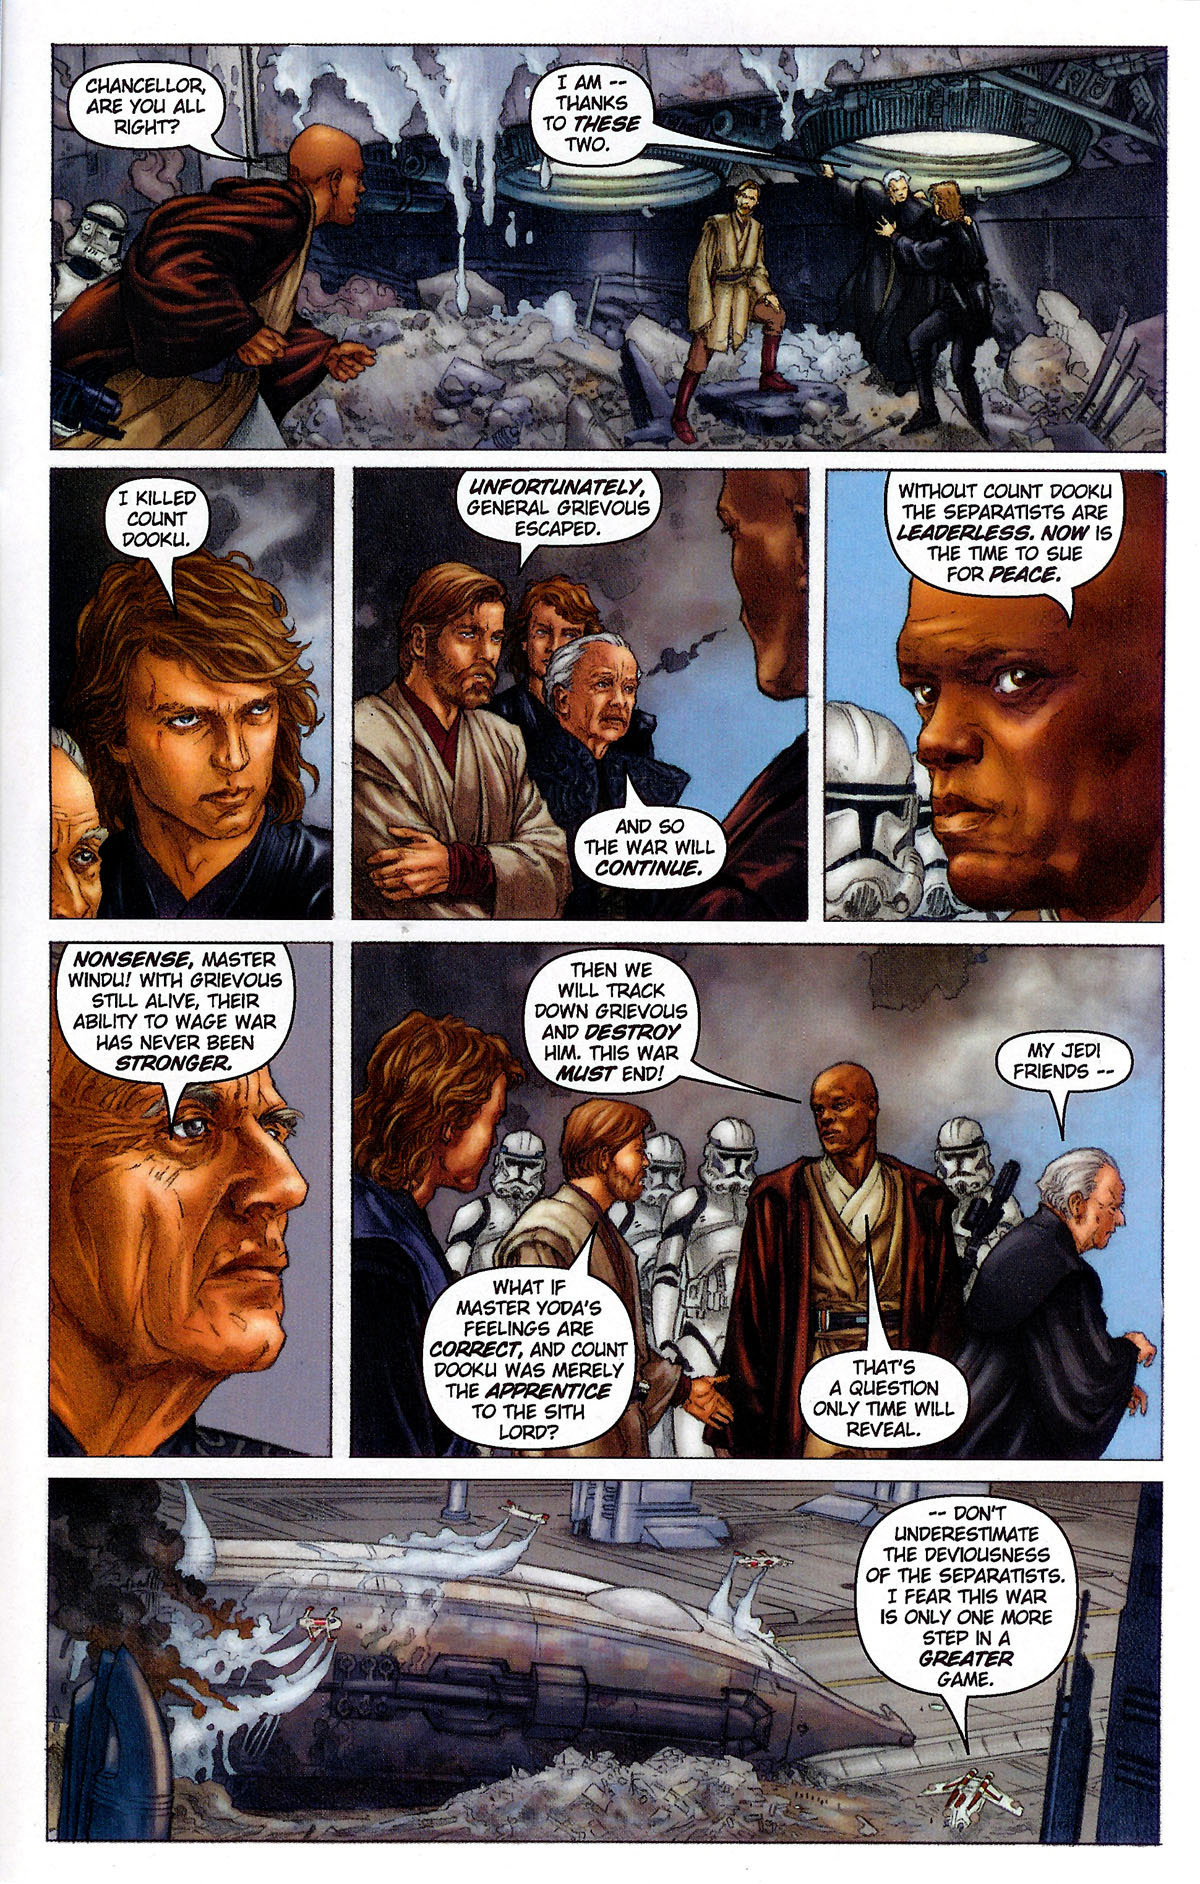 Star Wars Episode Iii Revenge Of The Sith 2005 1 Read Star Wars Episode Iii Revenge Of The Sith 2005 Issue 1 Page 21